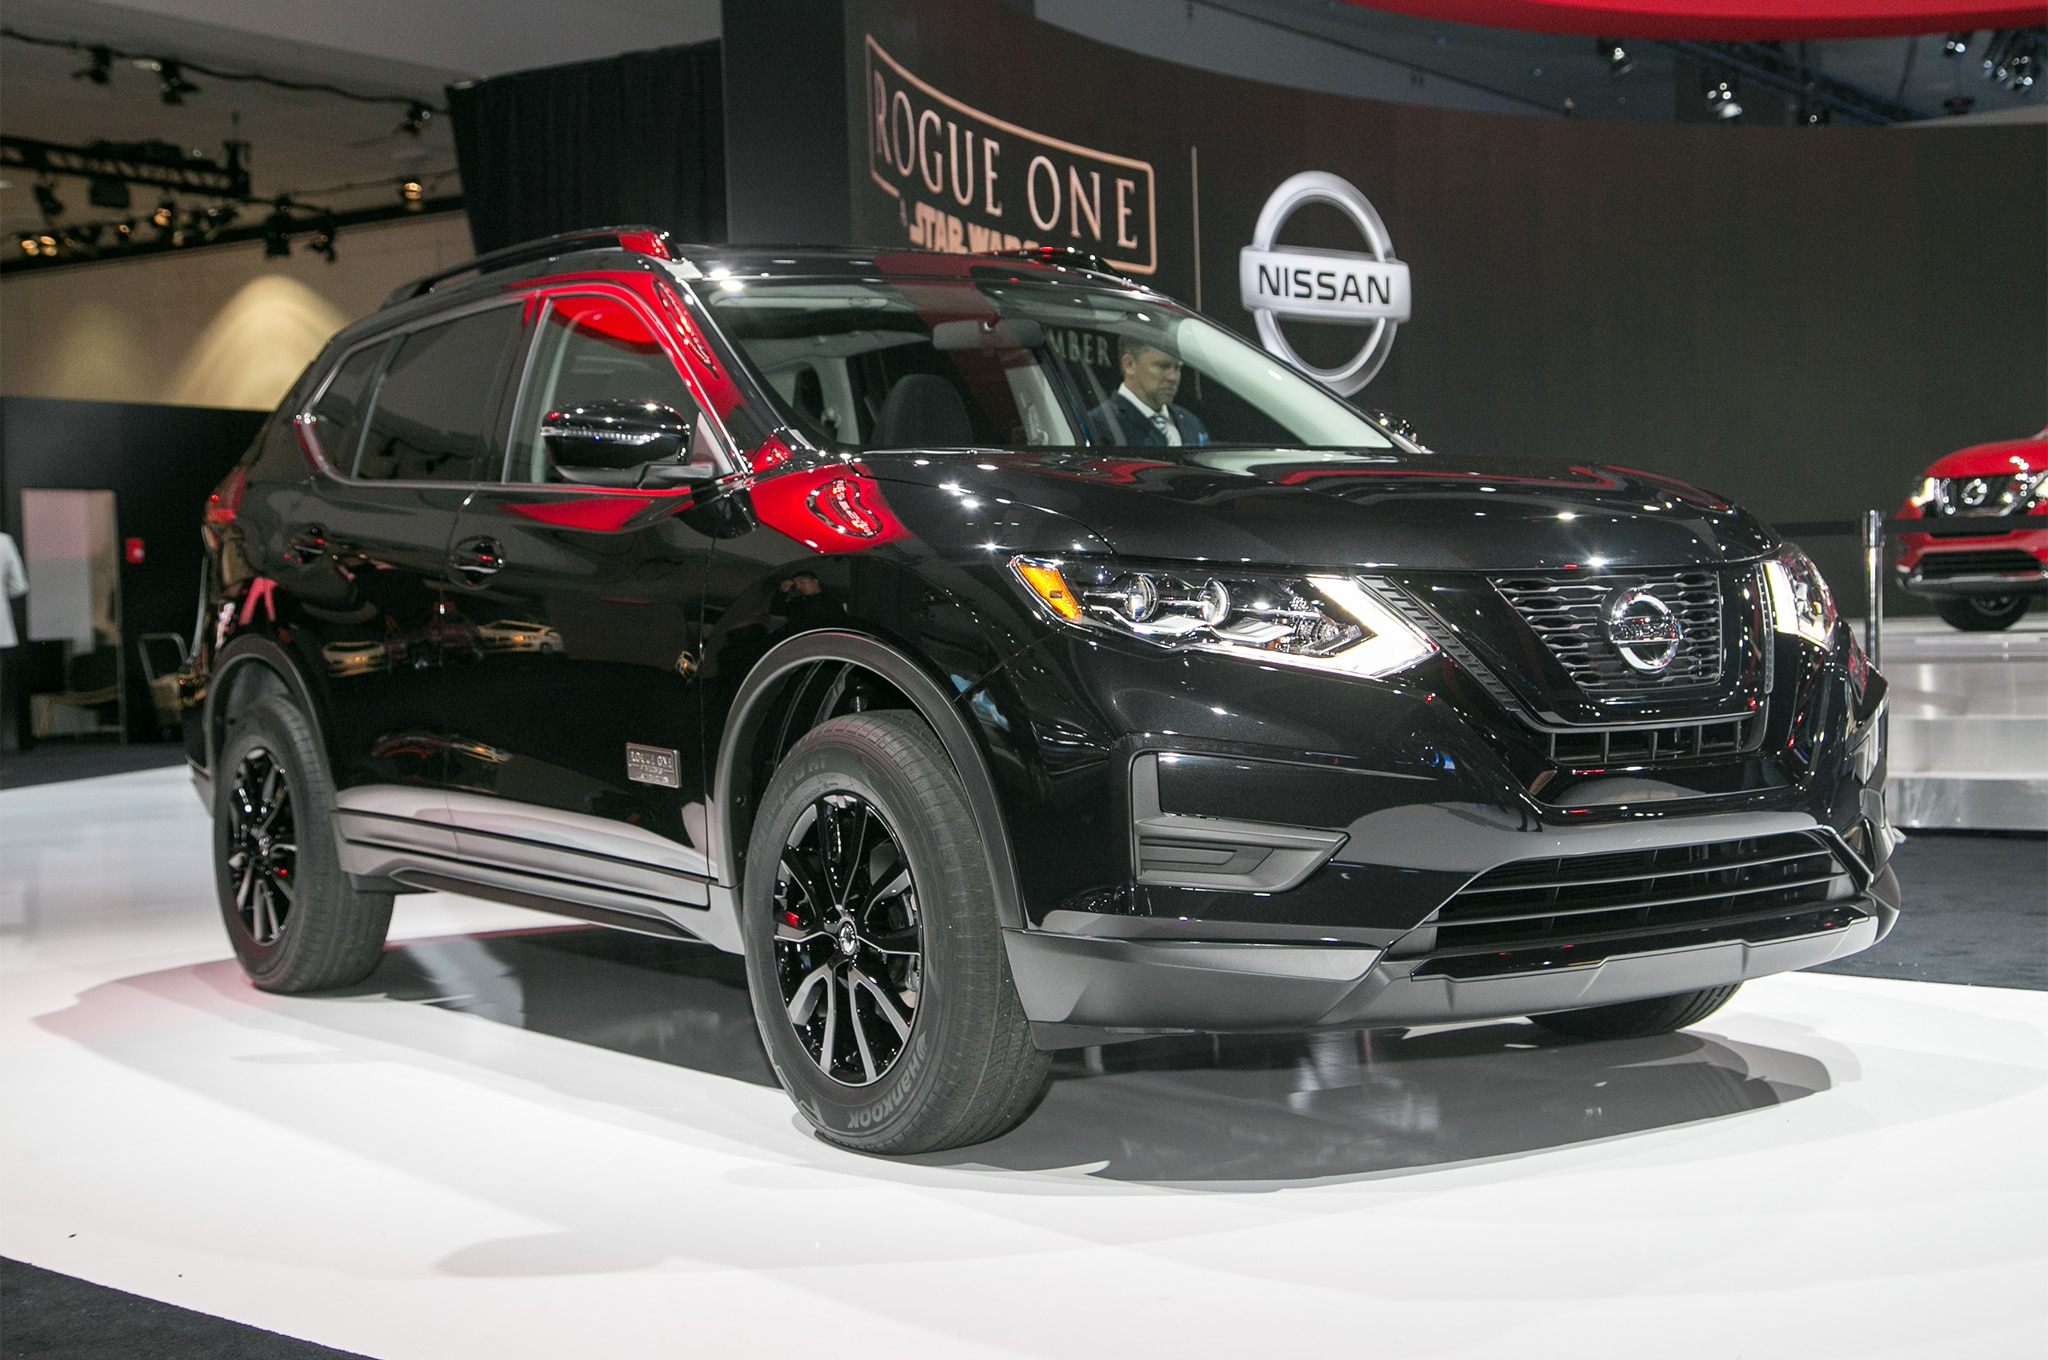 2017 Nissan Rogue Adds Rogue One Star Wars Limited Edition Package